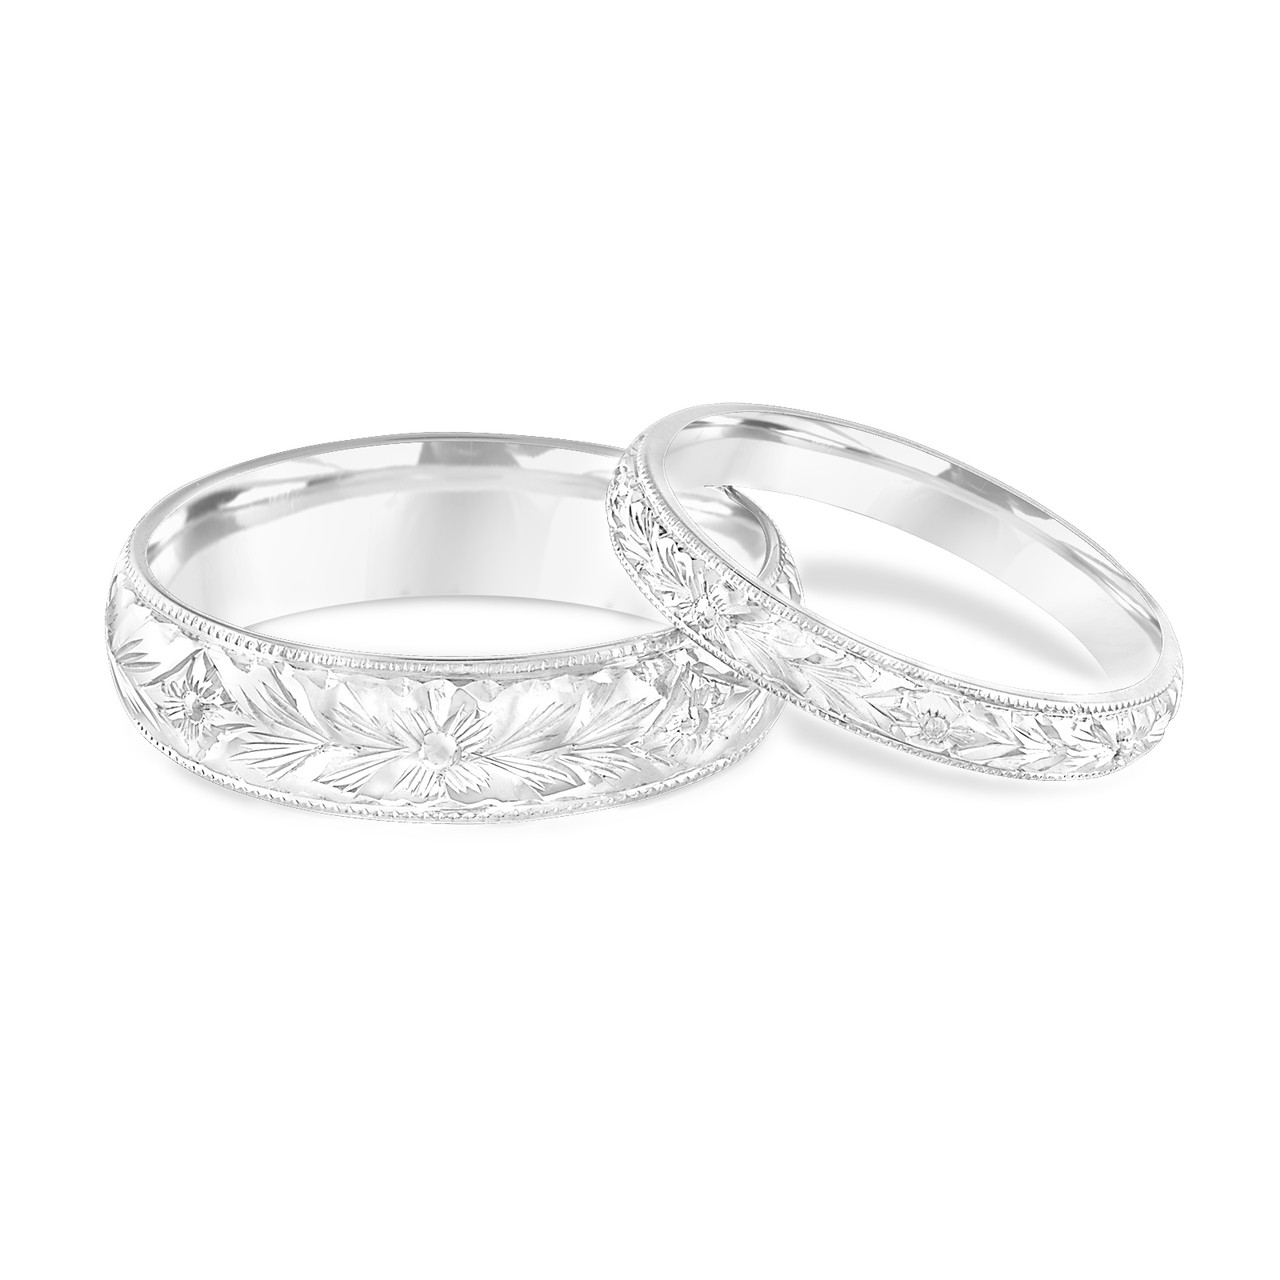 his and hers wedding bands hand engraved matching wedding rings couple wedding bands set vintage wedding